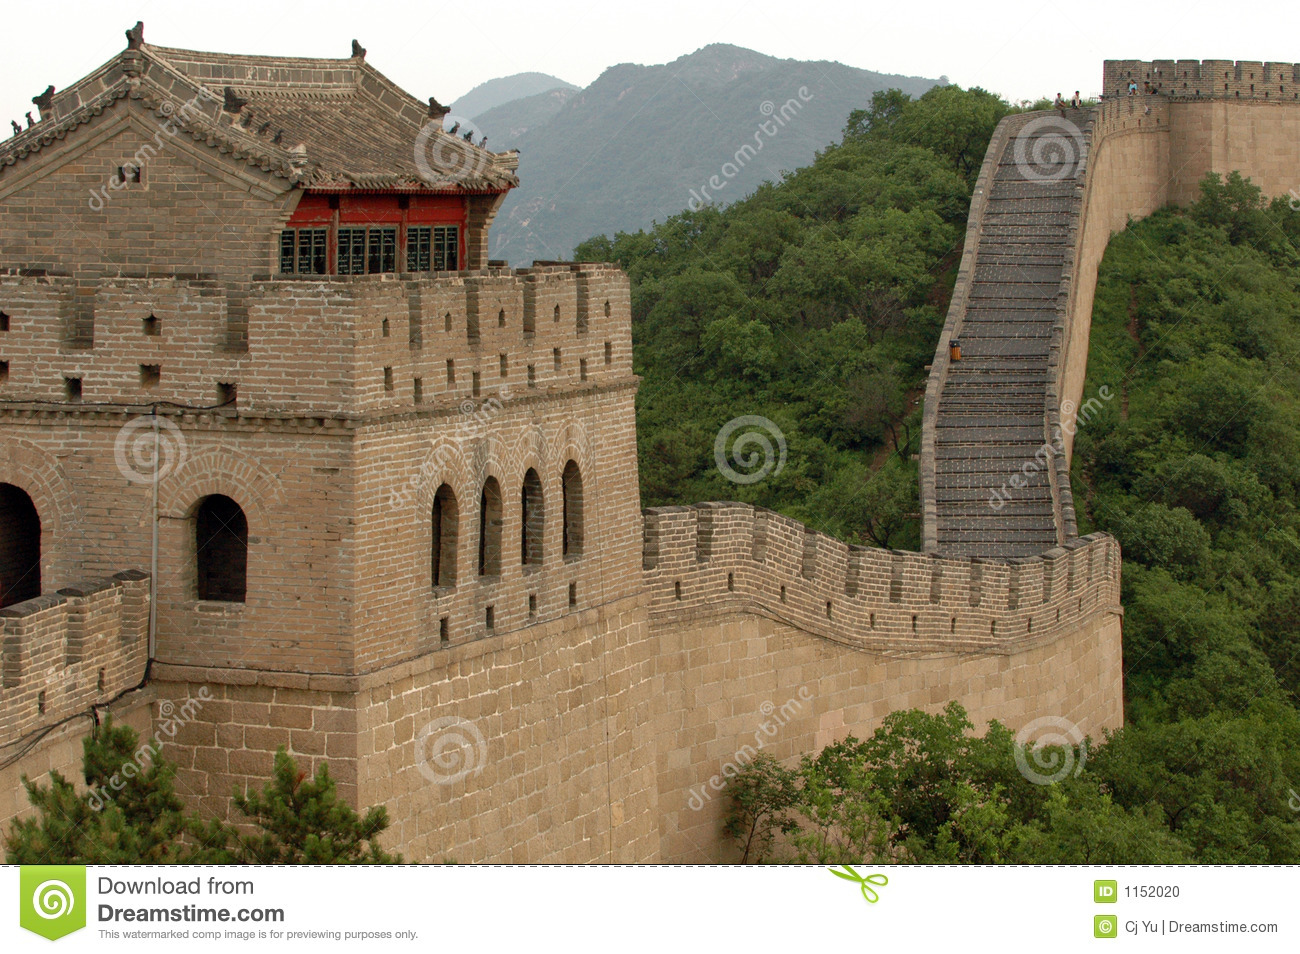 The great wall of china stock photo image of travel for A grande muralha da china